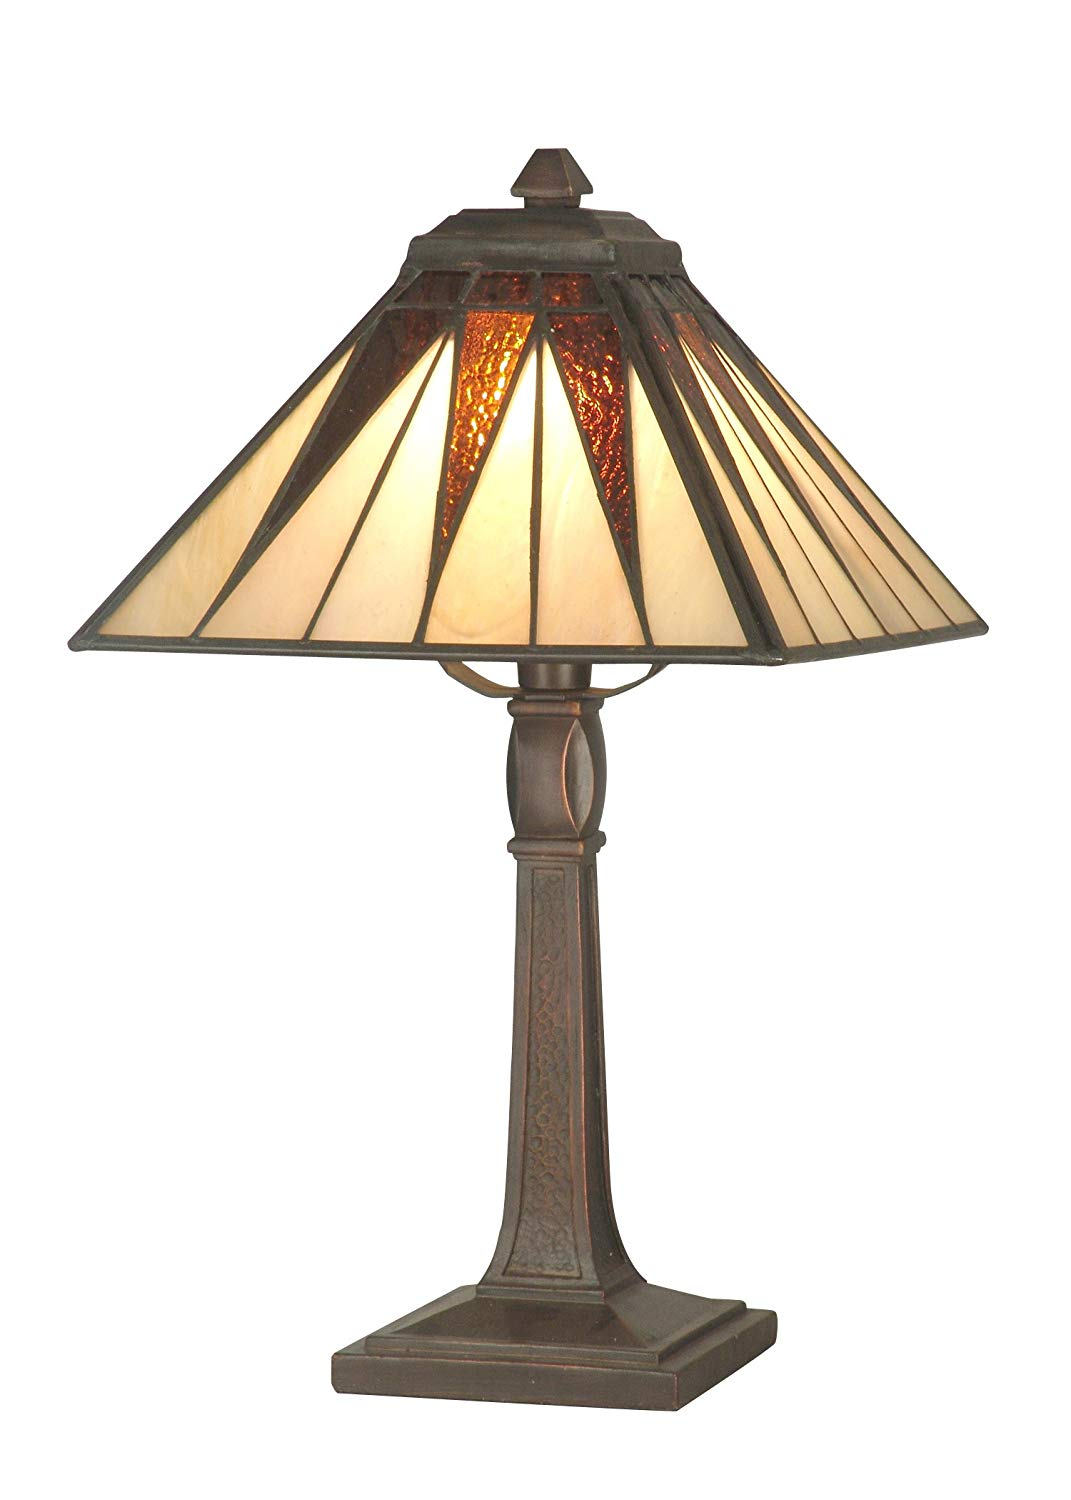 dale tiffany cooper accent lamp antique bronze and art table lamps glass shade clear acrylic cocktail wooden storage trunk office cupboard pottery barn headboard brass for living